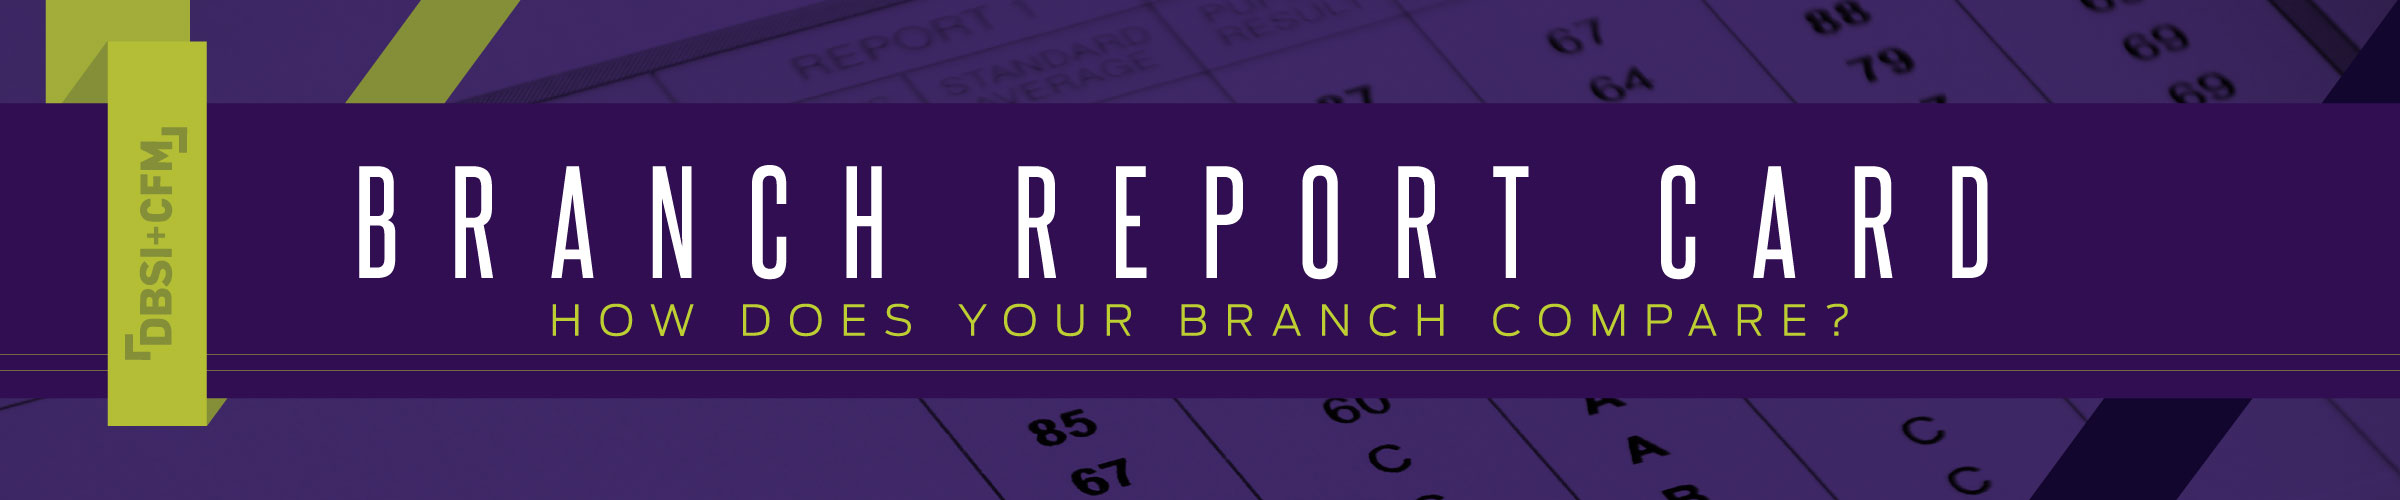 Branch-Reportcard-2400x500